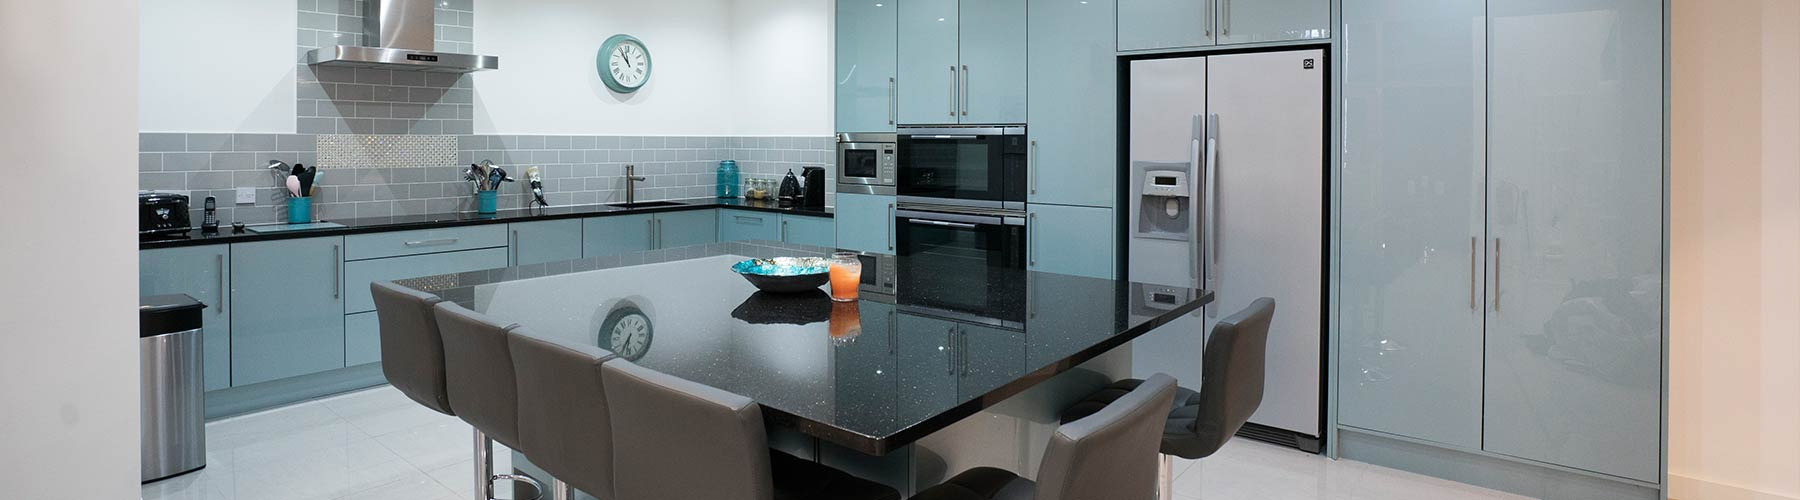 Large blue gloss kitchen with granite worktops and large island.